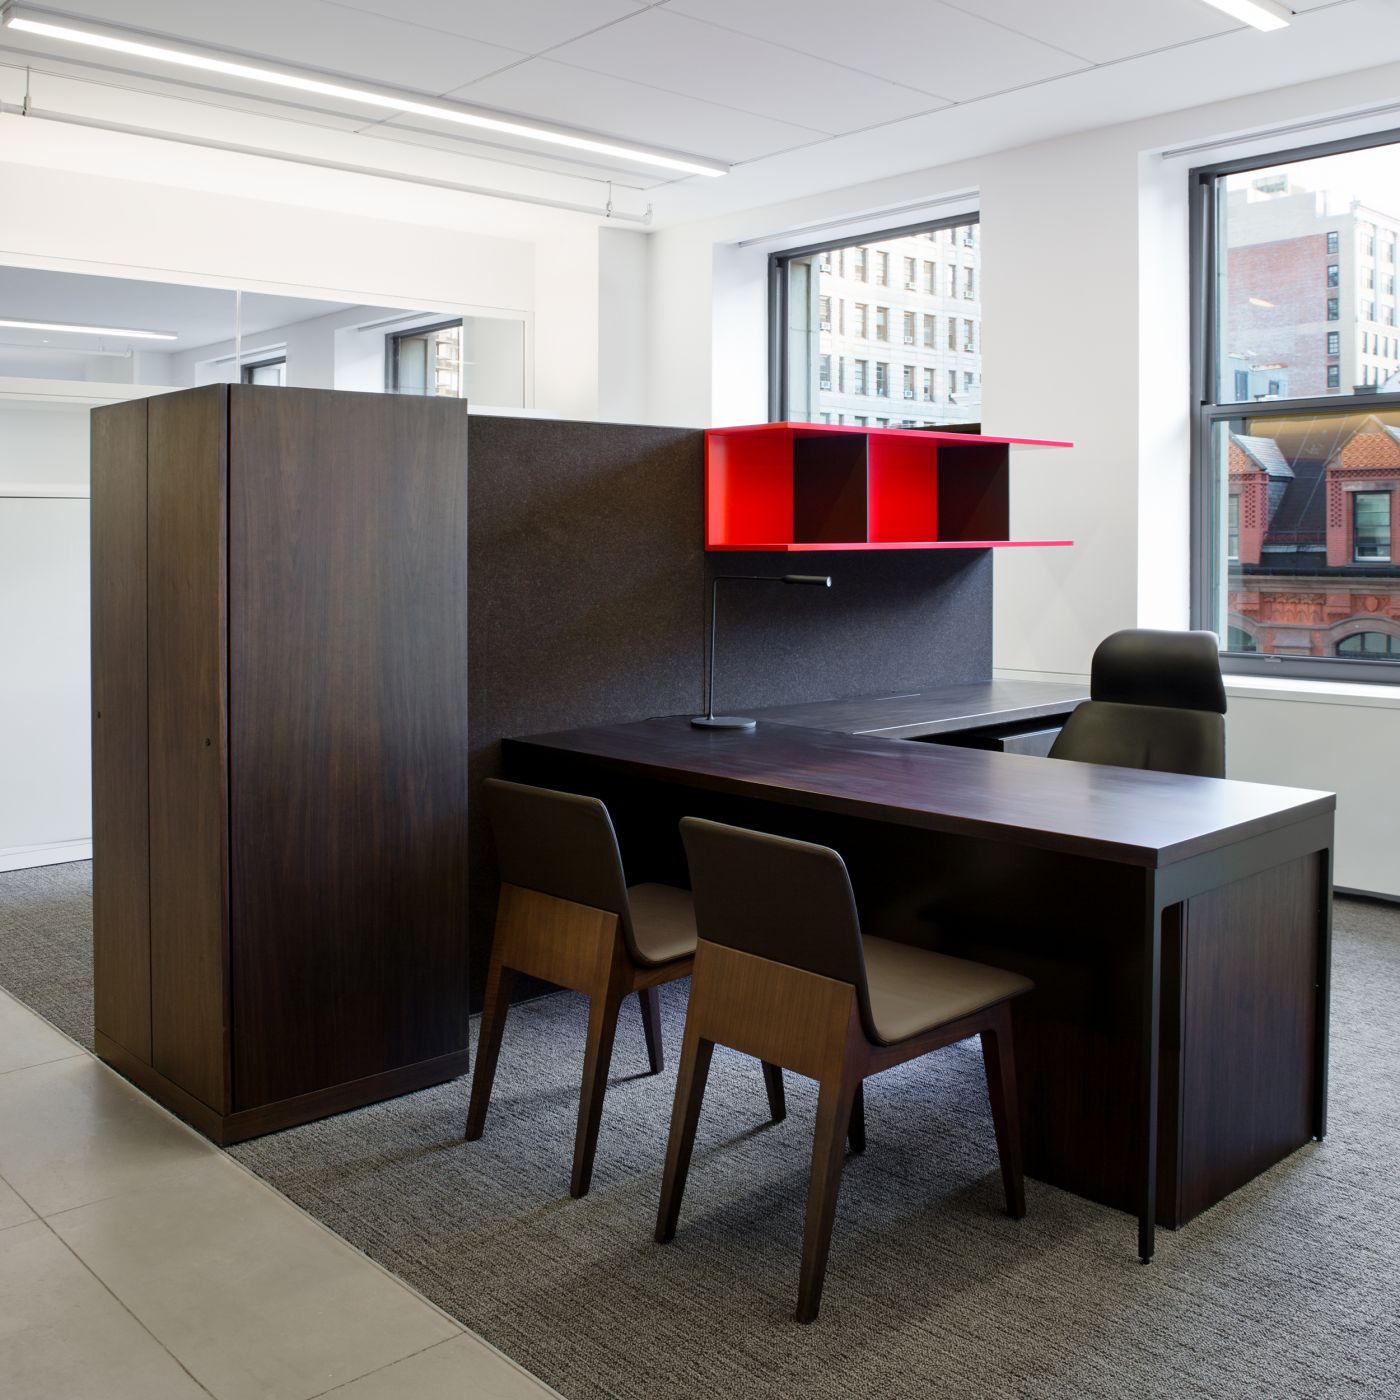 IMG utilizes private office layouts in an open office environment.